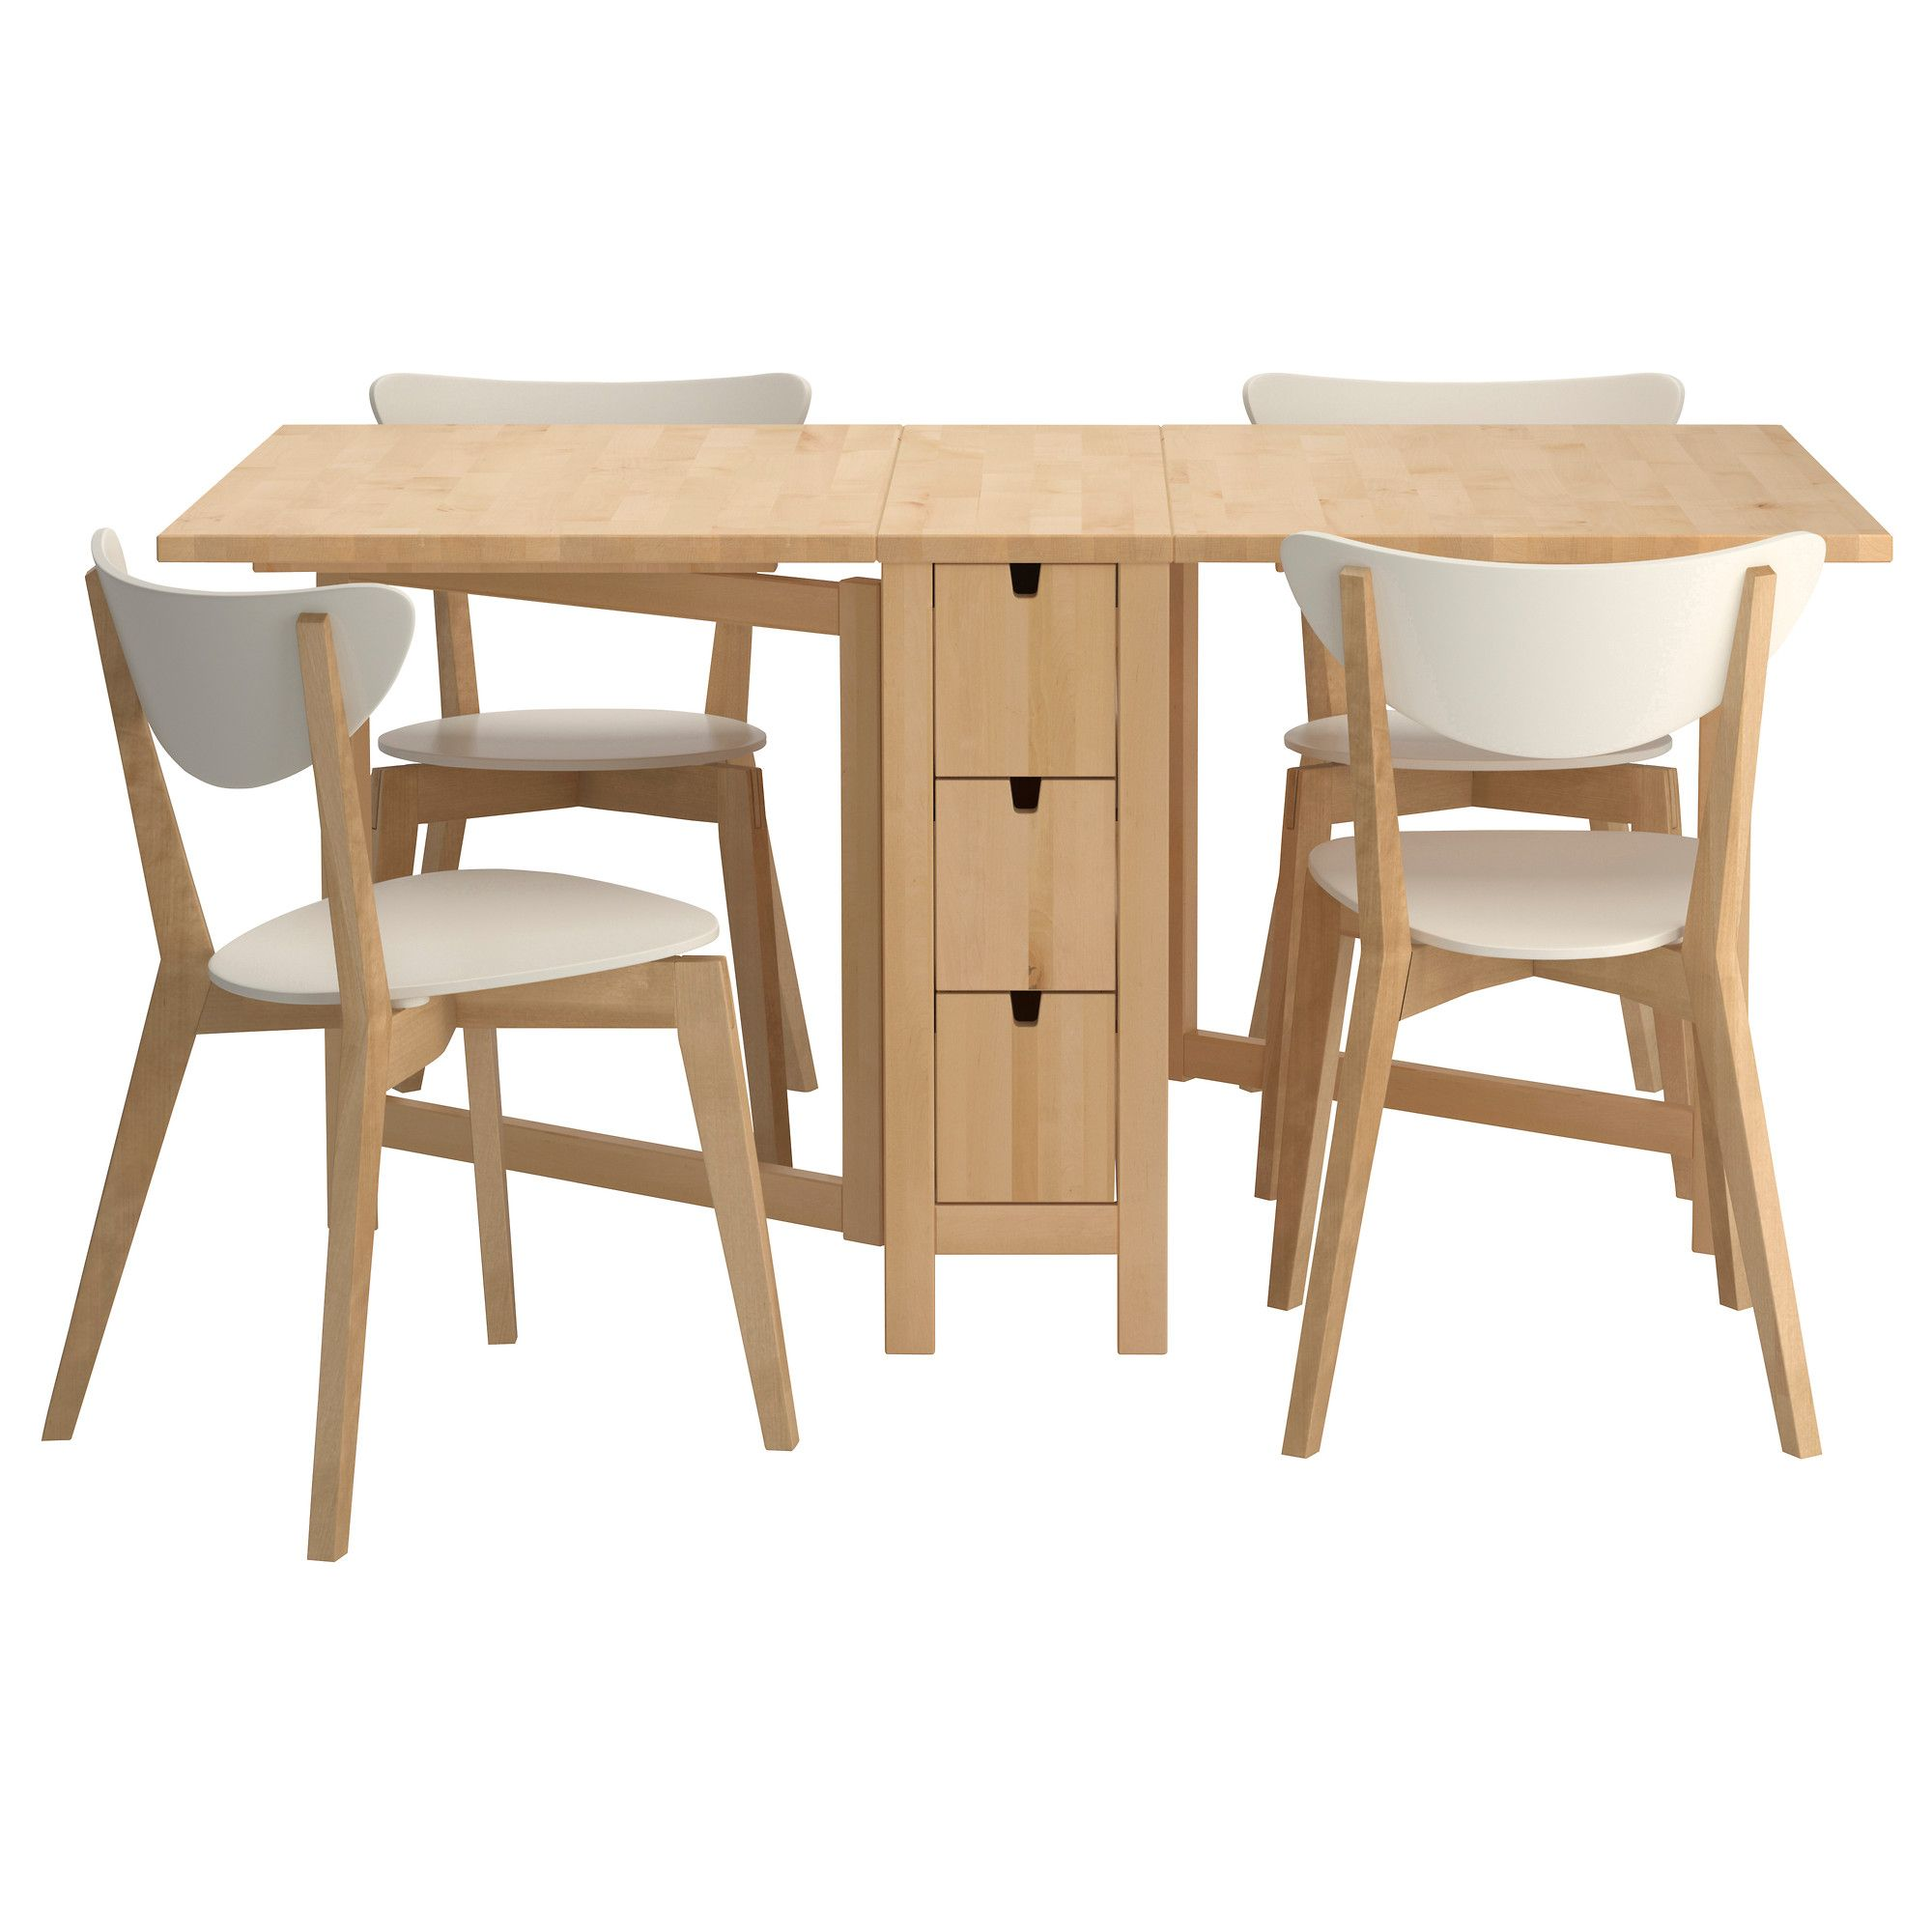 Norden nordmyra table and 4 chairs ikea for the love for Small wood dining table and chairs